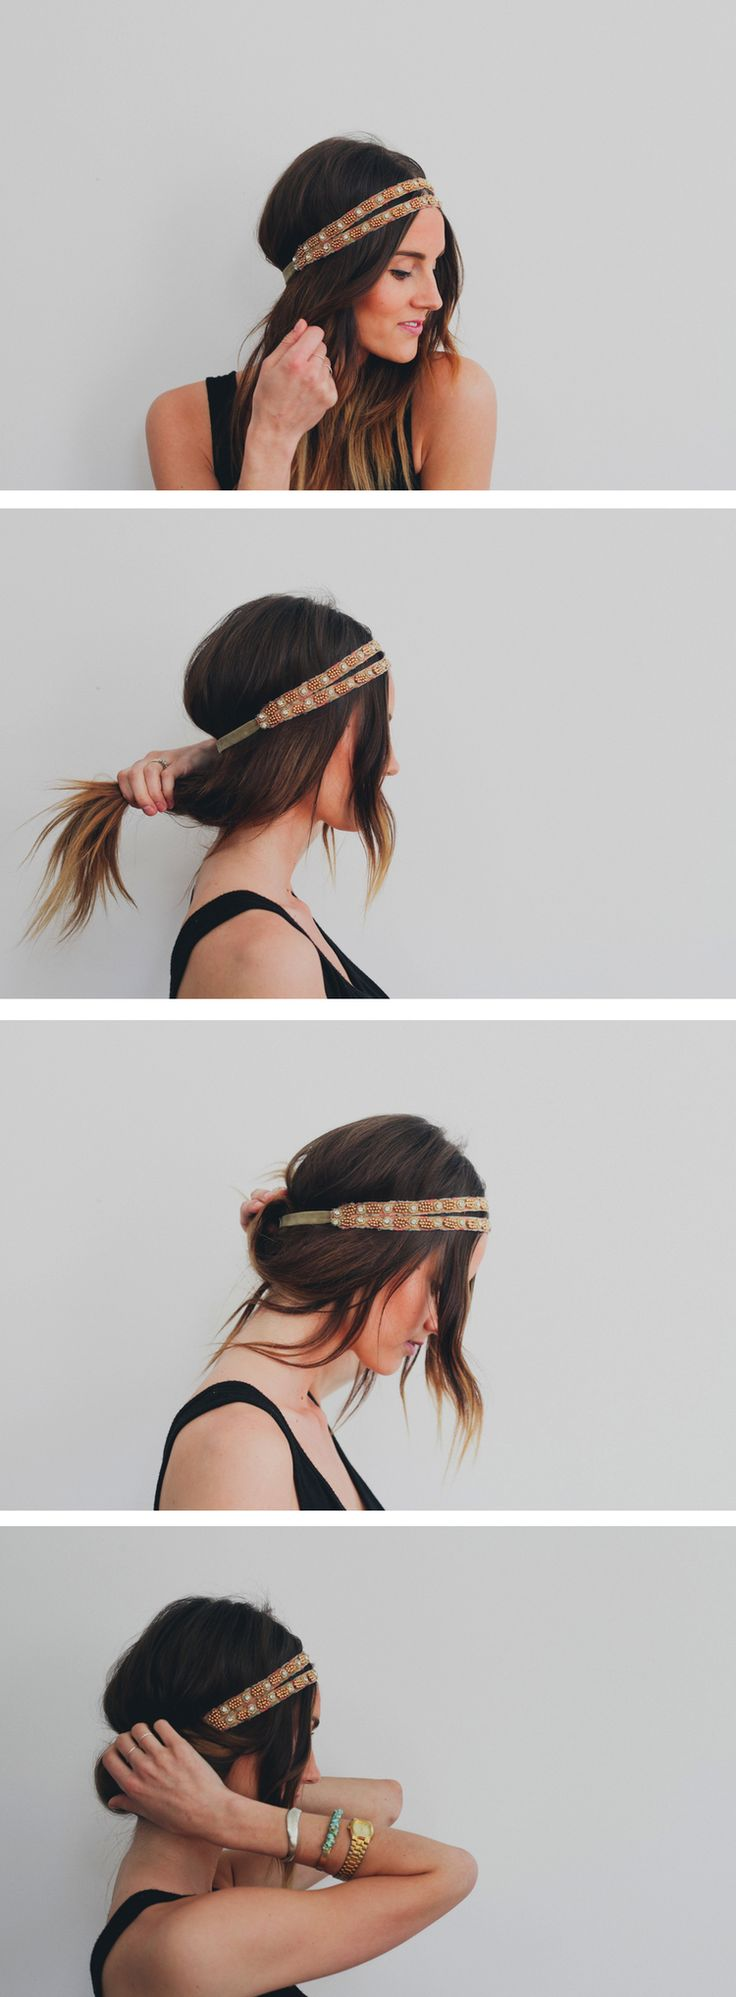 This hair tutorial is actually one of the first hair tutorials we posted and is still one of our readers favourites. We always find it popping up on Pinterest, and recently on Buzzfeed, so we figured we would recreate a more recent/better version of it for you along with a video! This beautiful beaded boho headband from Three Birds Nest worked perfectly for this tutorial. Take a look at their site to see more similar styles. -Bethany This is super simple, you can do it in literally a c...